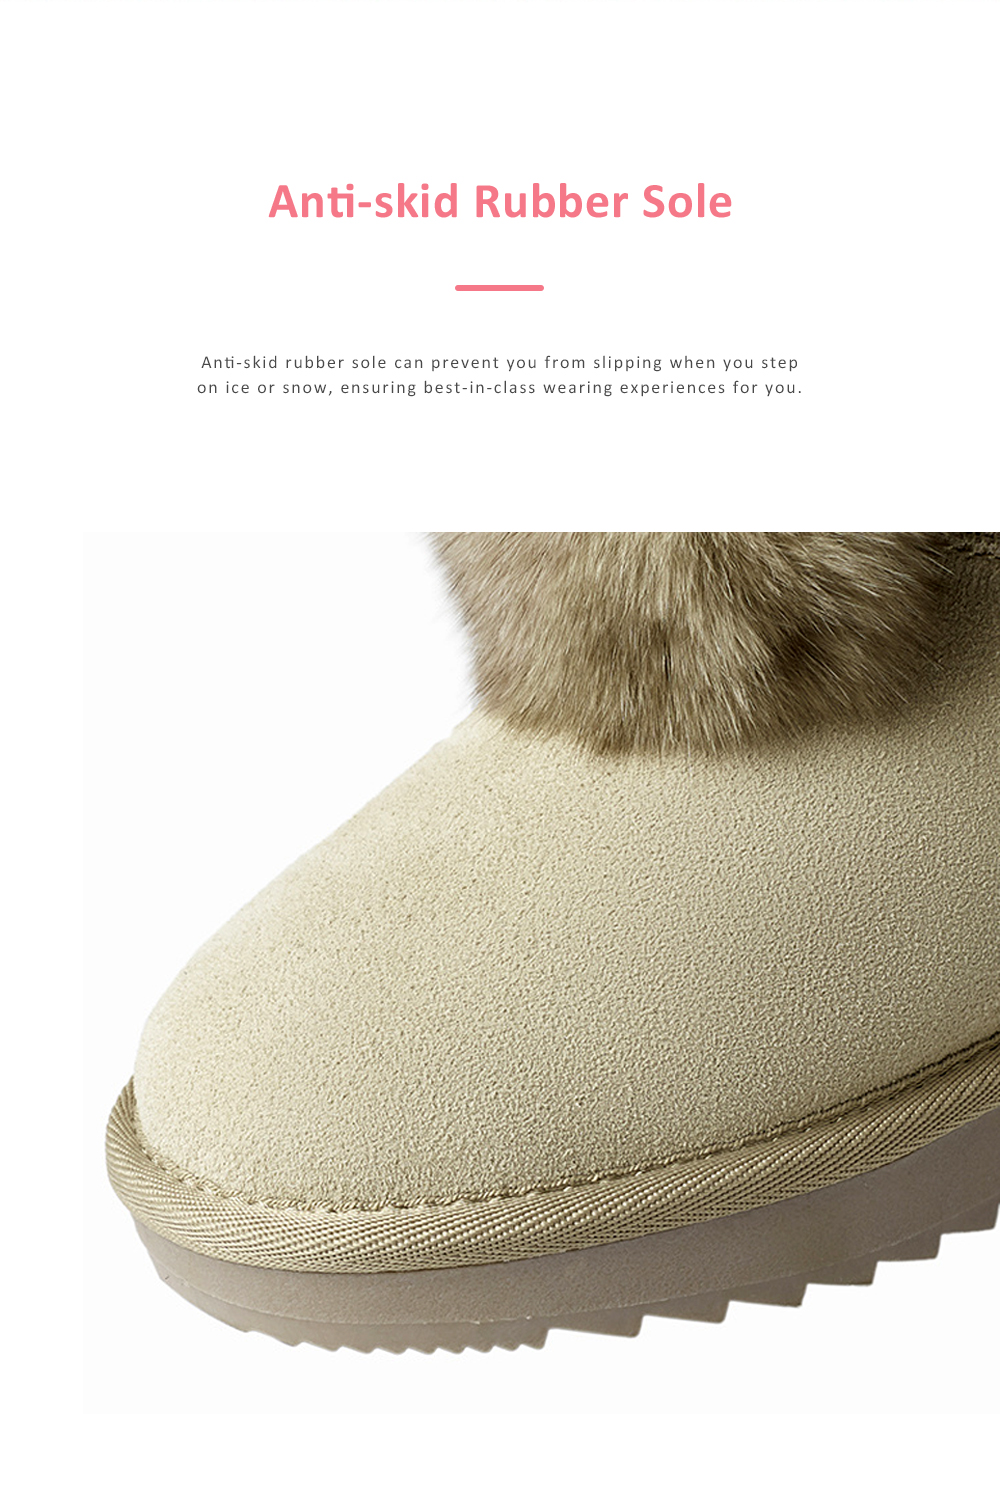 Warm Winter Autumn Cute Fluffy Rabbit Ears Model Decorative Anti-skid Girl Snow Boots with Fuzzy Ball Decoration 5